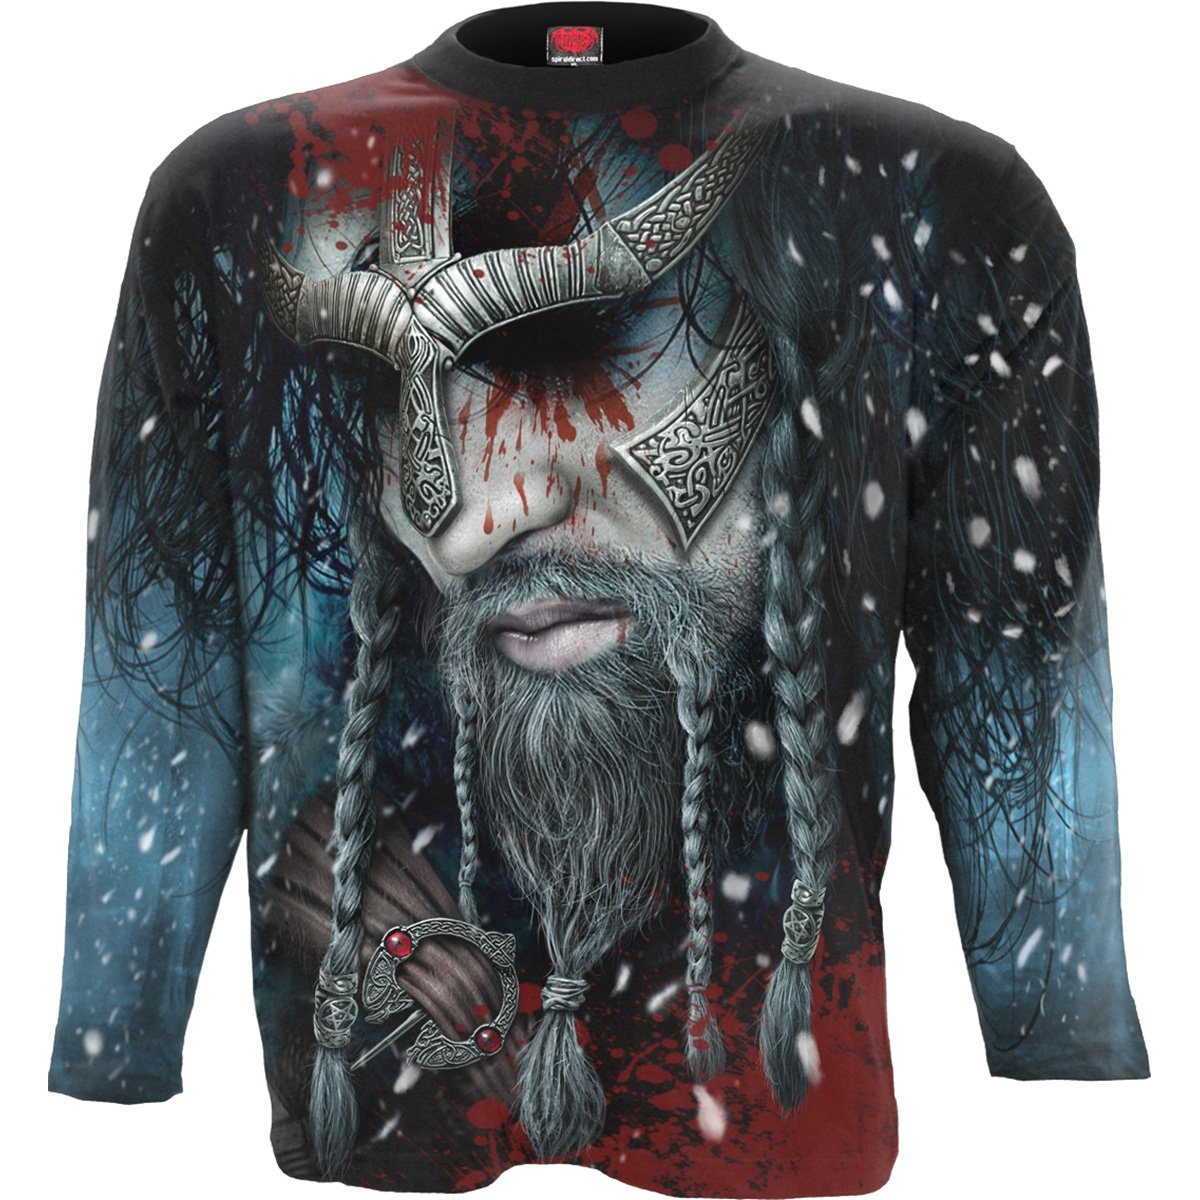 Viking Warrior Men's Black Longsleeve Shirt